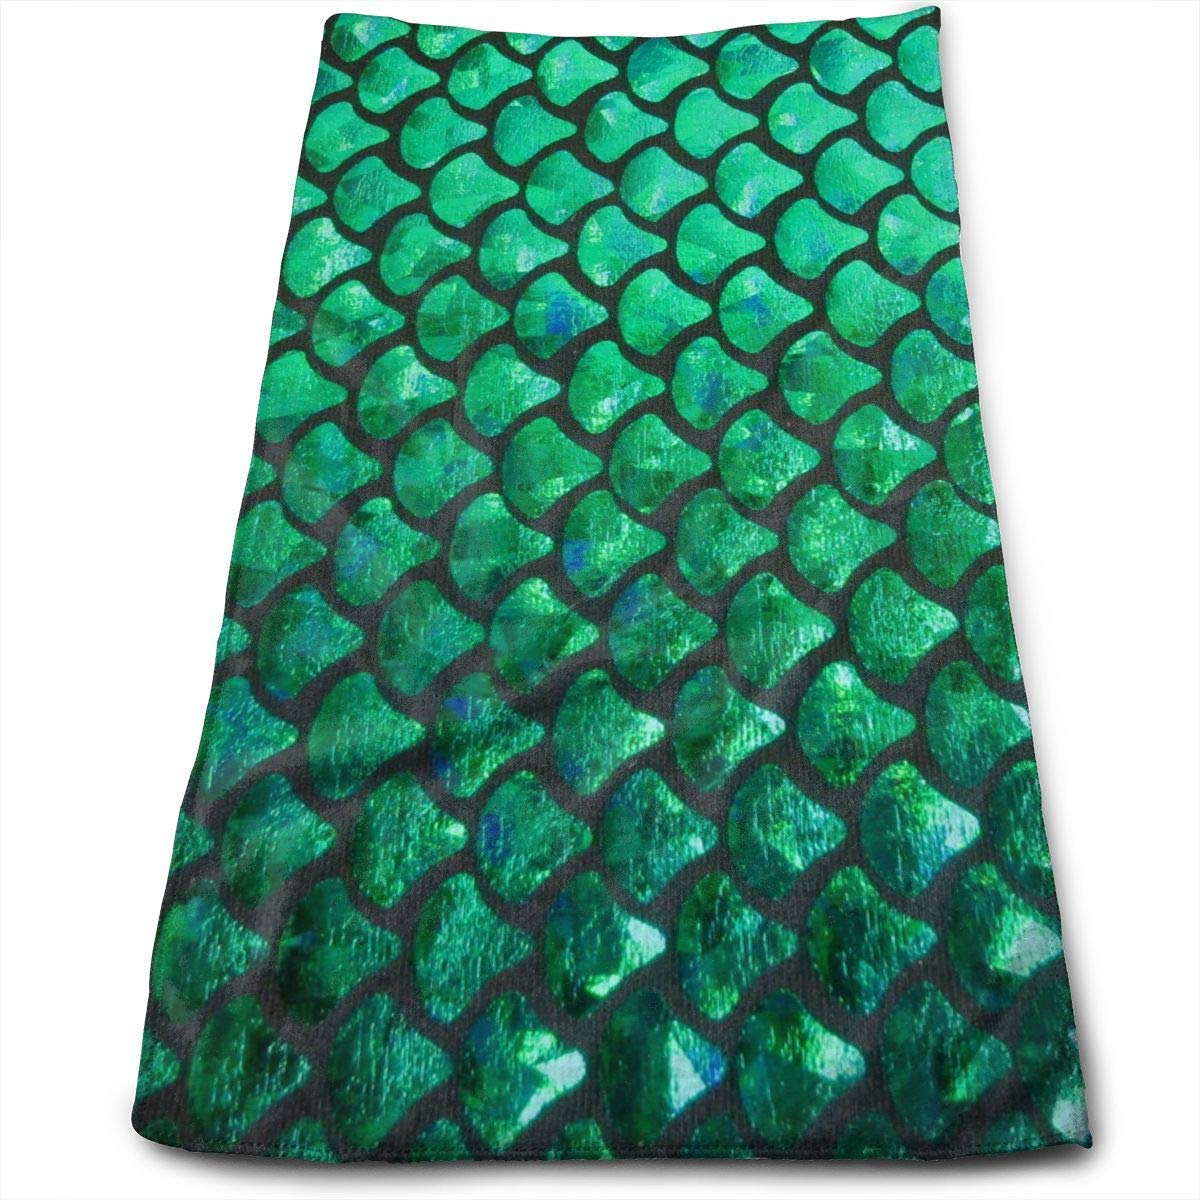 OQUYCZ Mermaid Scales Background Multi-Purpose Microfiber Towel Ultra Compact Super Absorbent and Fast Drying Sports Towel Travel Towel Beach Towel Perfect for Camping, Gym, Swimming.